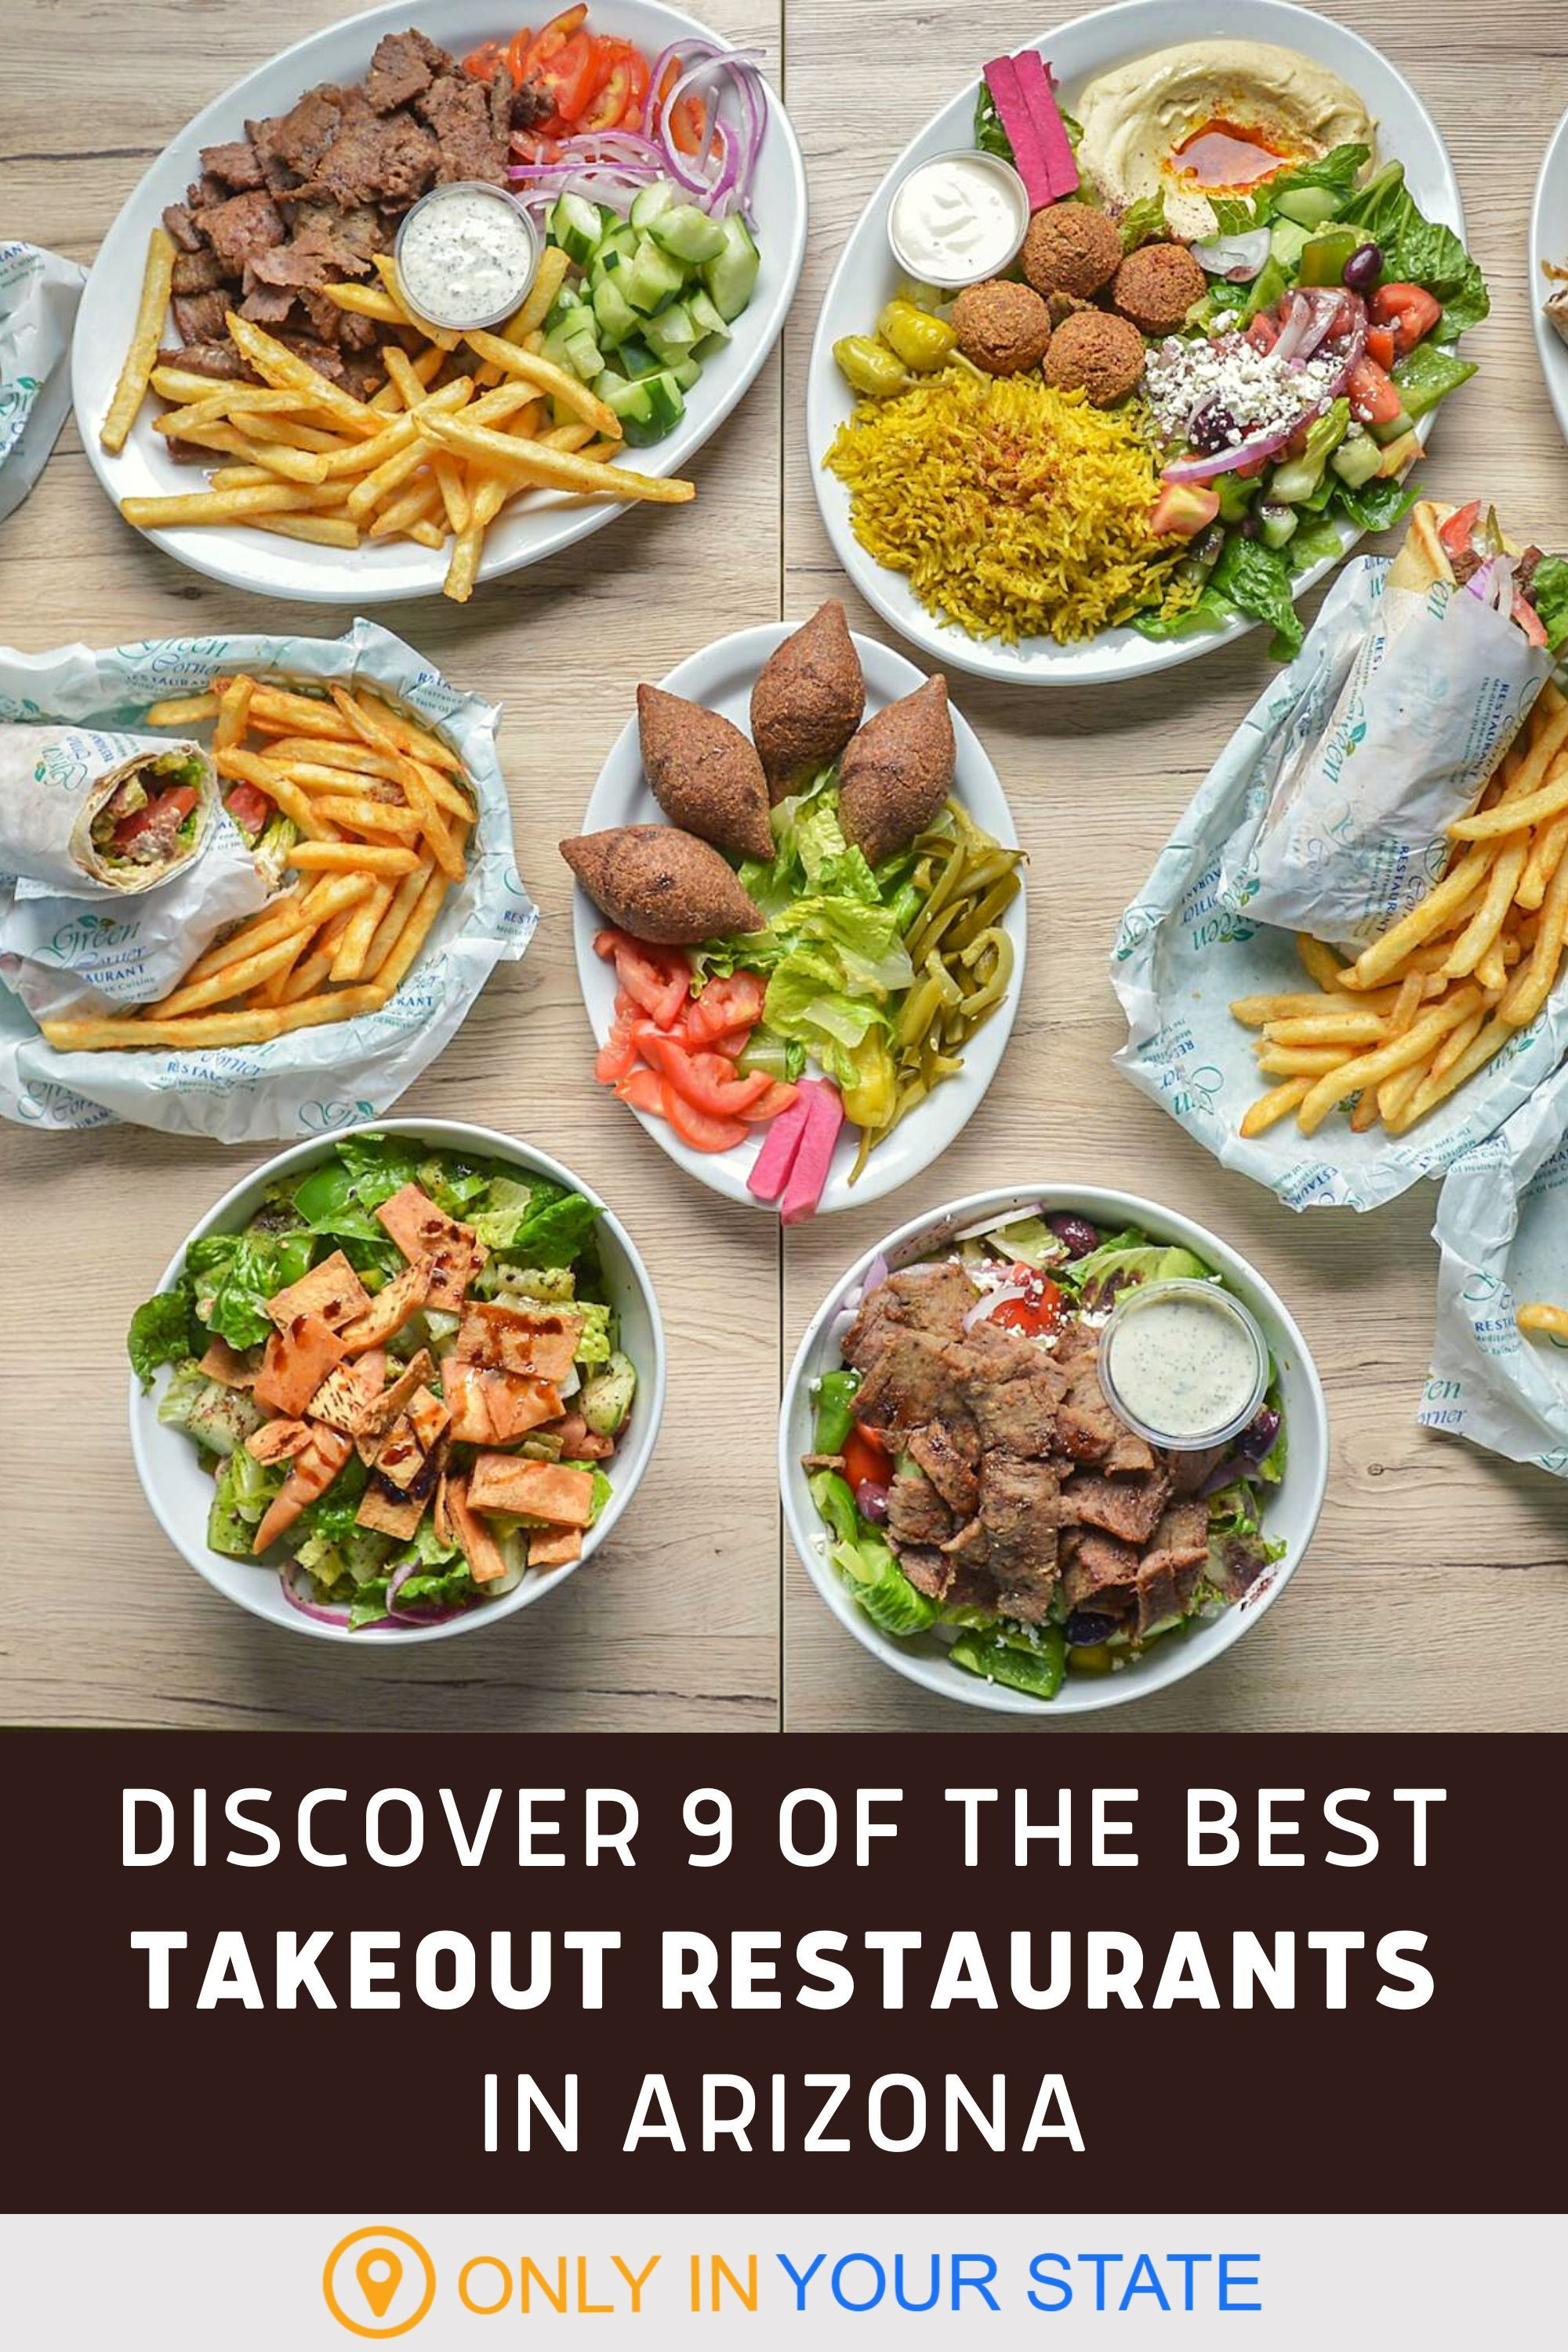 Takeout Is Just As Good As Dining In At These 9 Arizona Restaurants Arizona Restaurants Takeout Restaurant Dining Menu